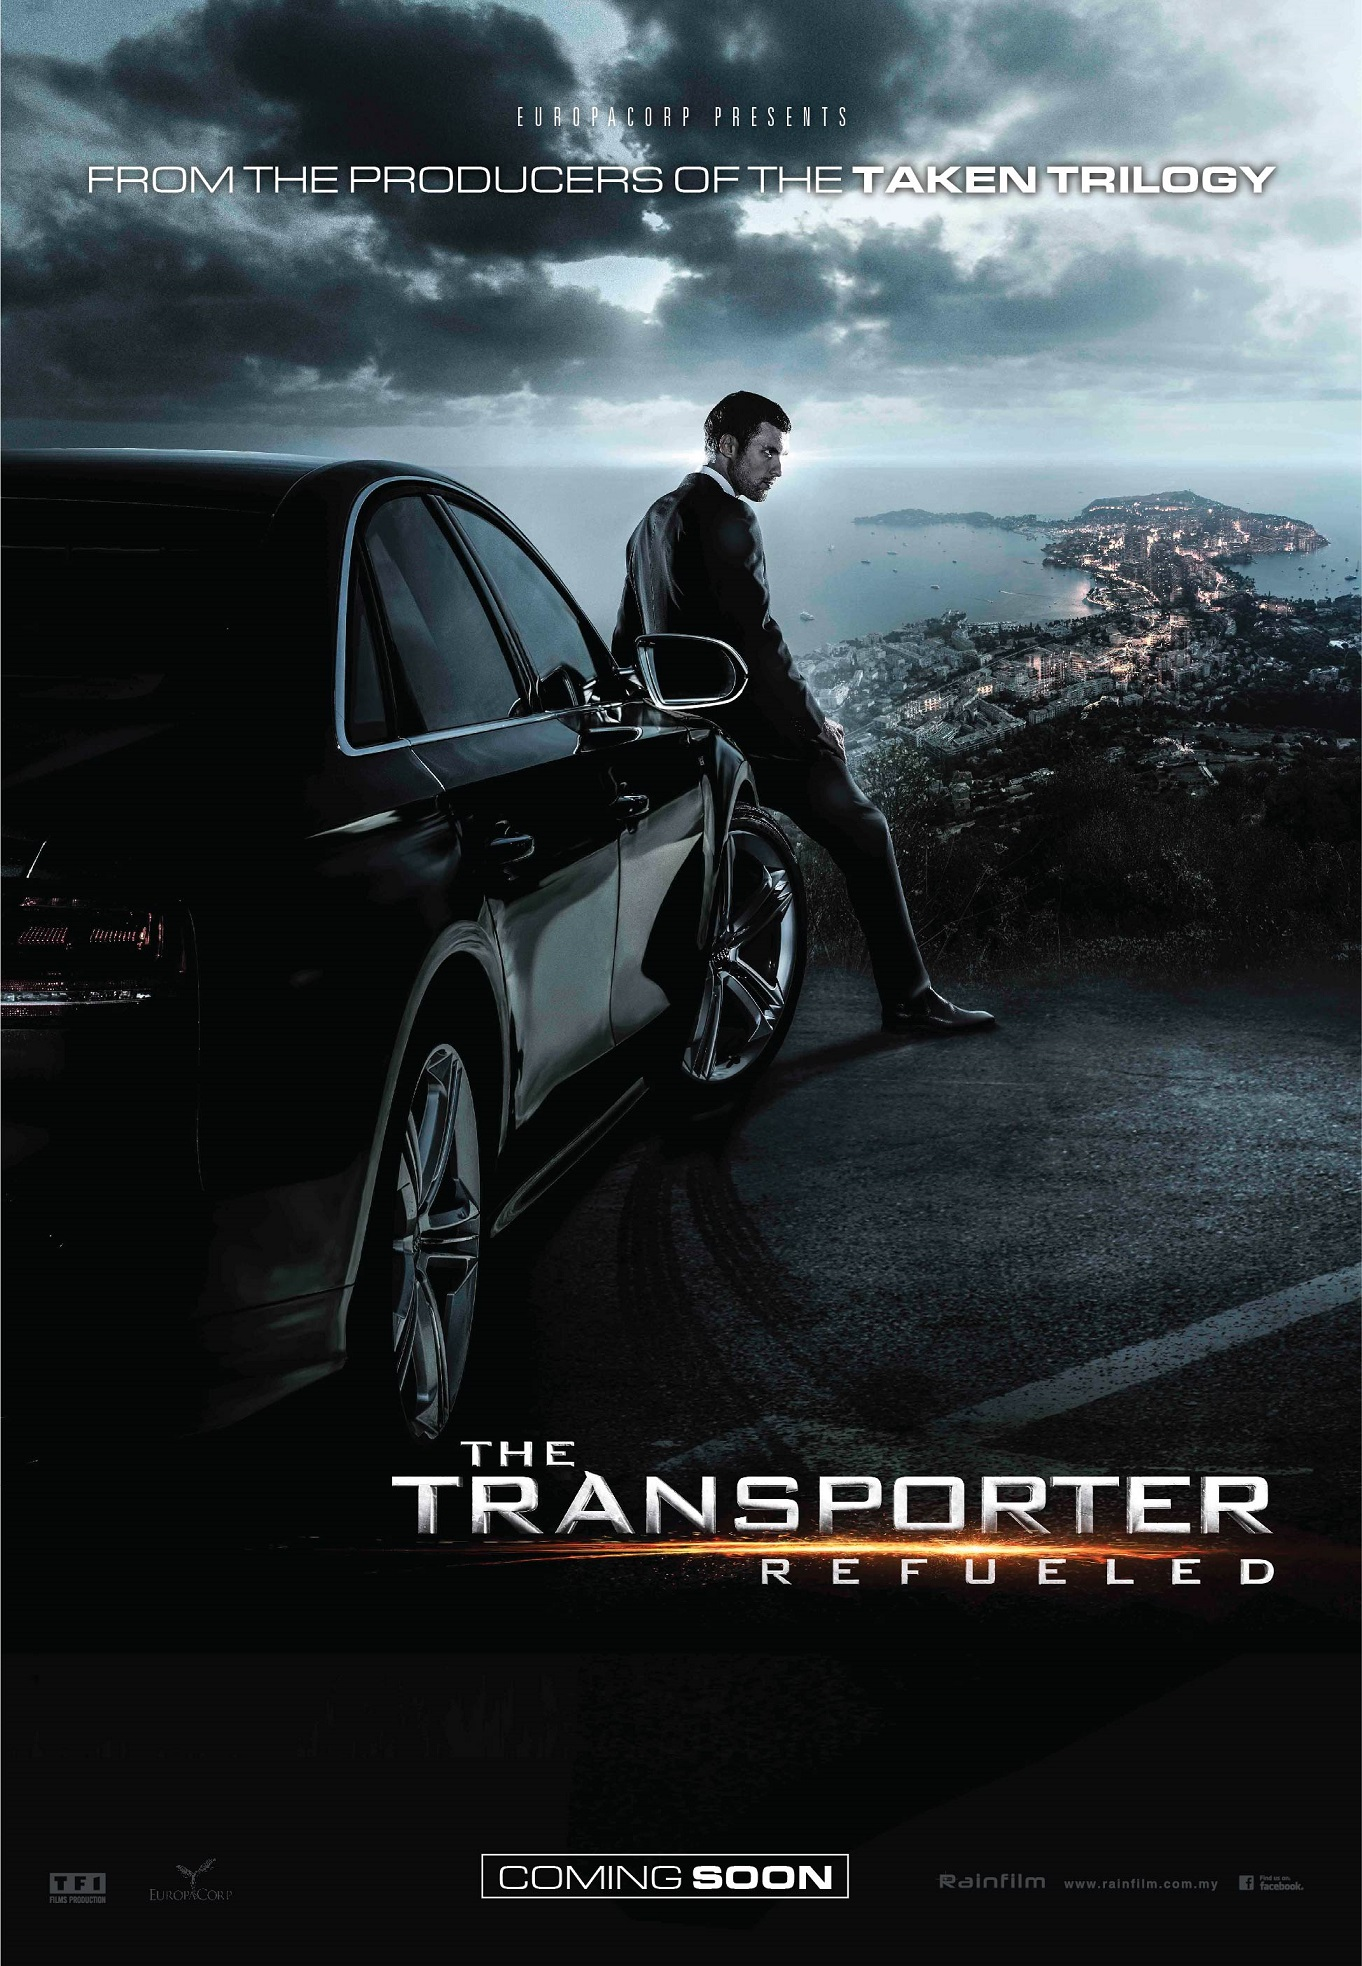 Transporter refueled